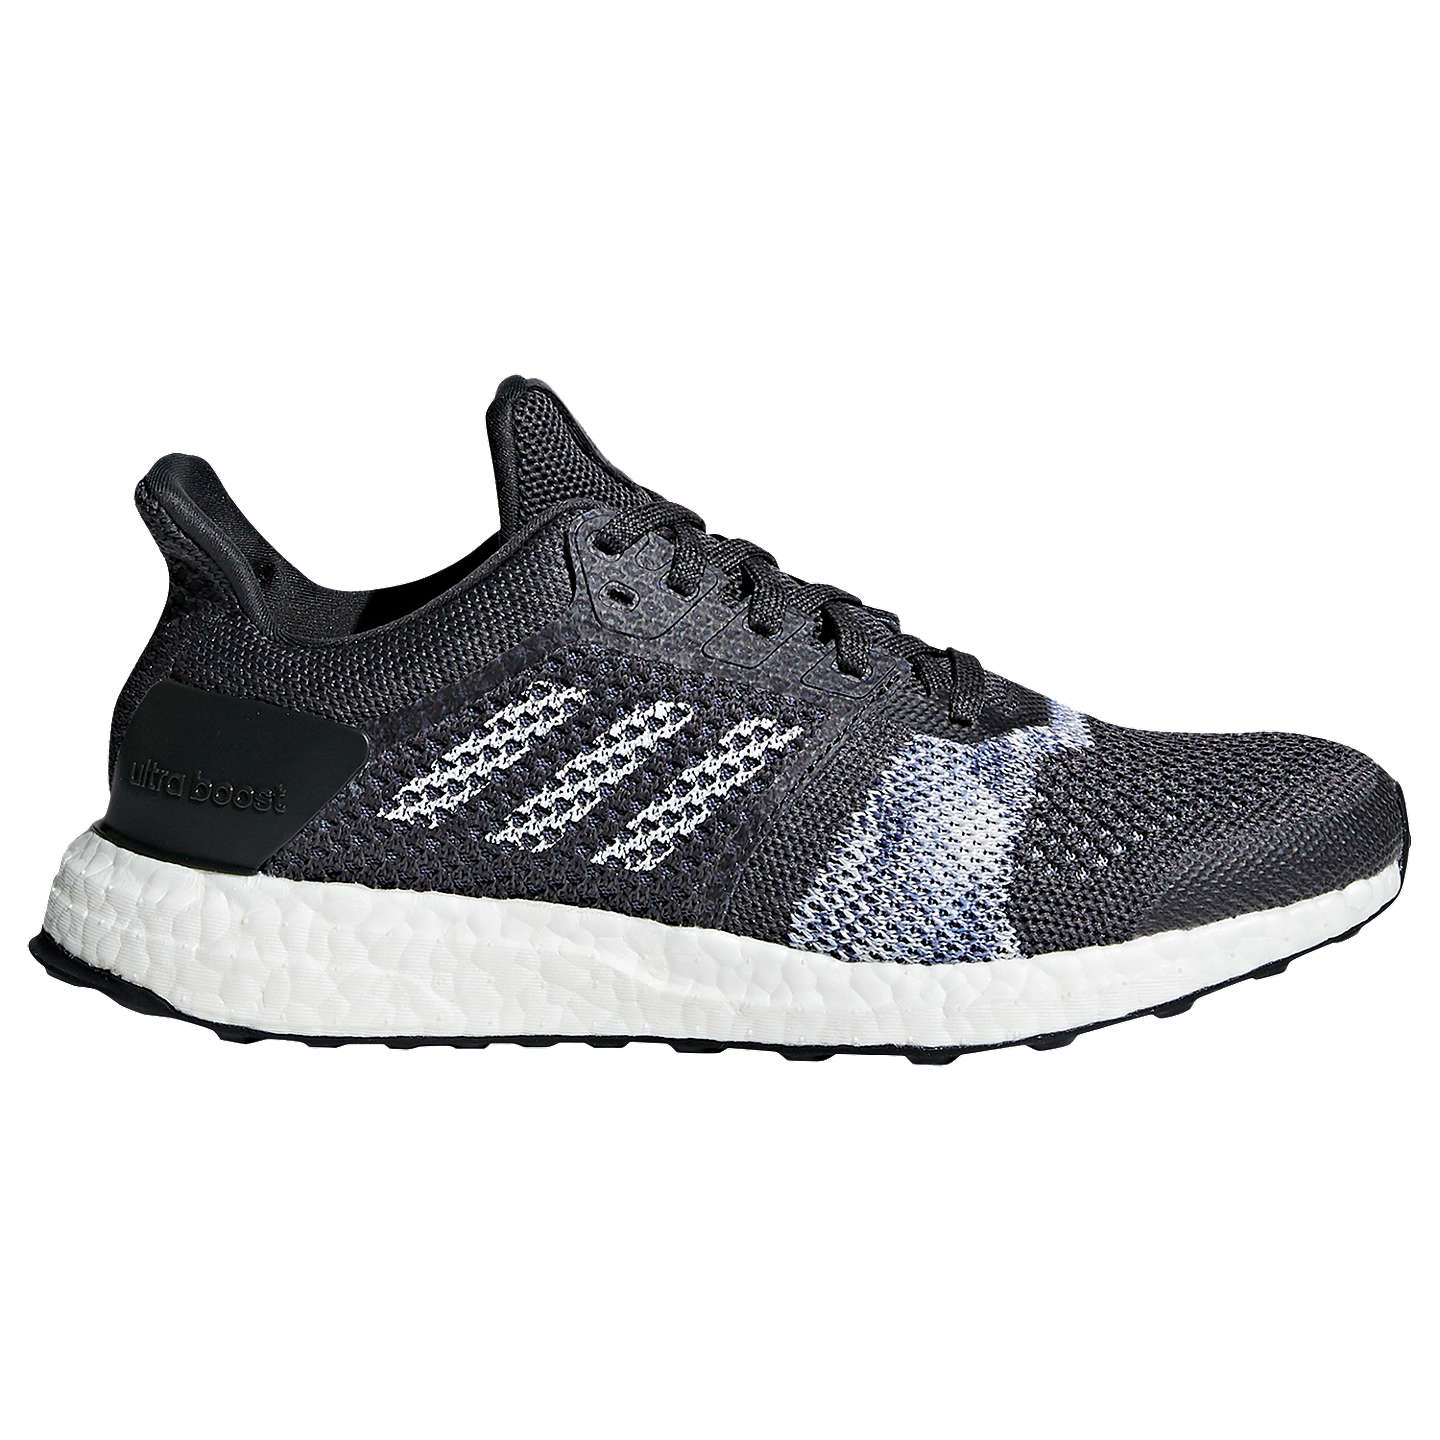 Buyadidas UltraBOOST Stability Women's Running Shoes, Carbon Grey, 4 Online  at johnlewis. ...